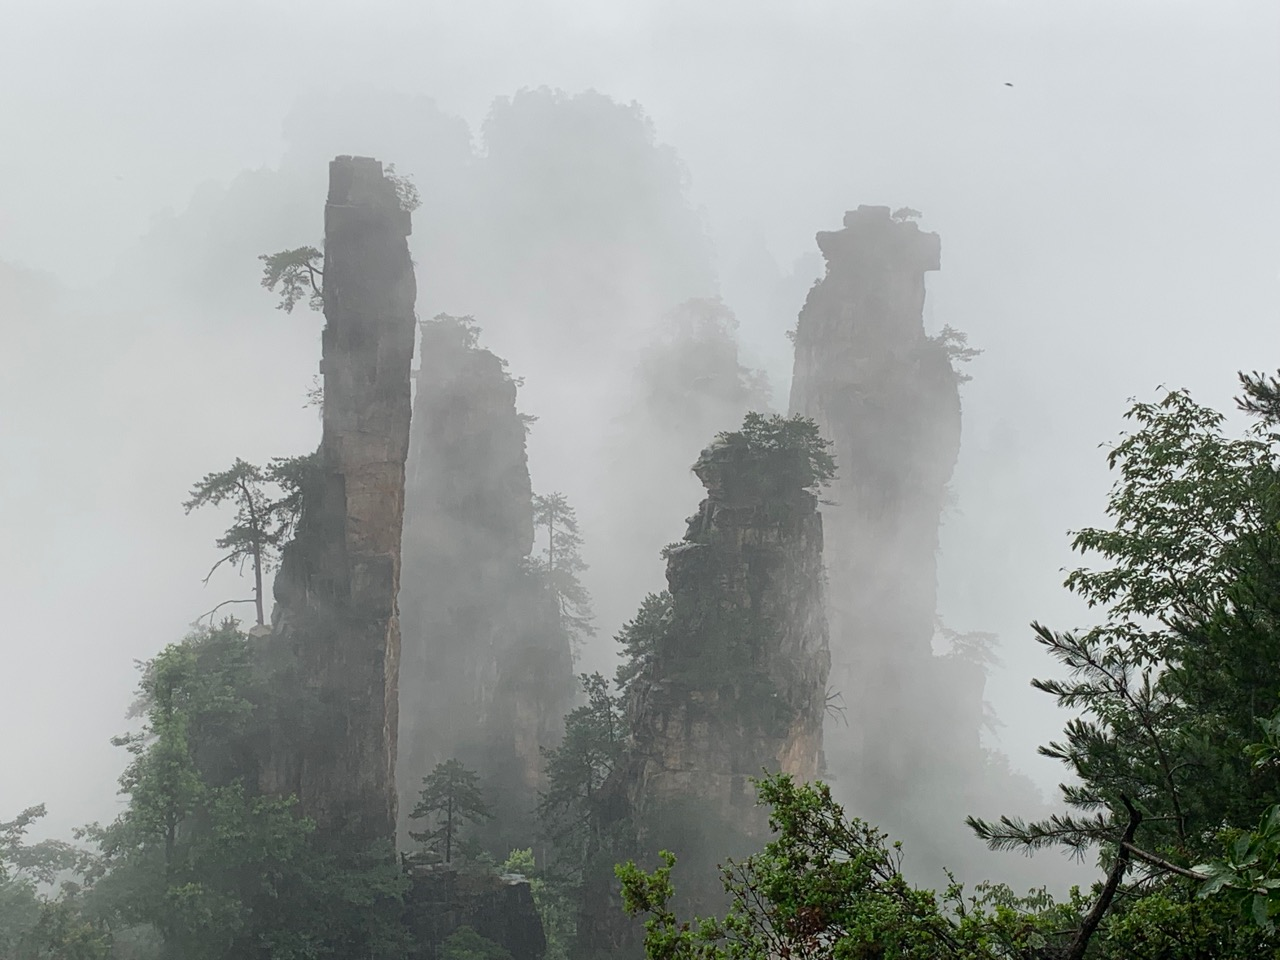 The magical, mystical view from Tianzishan